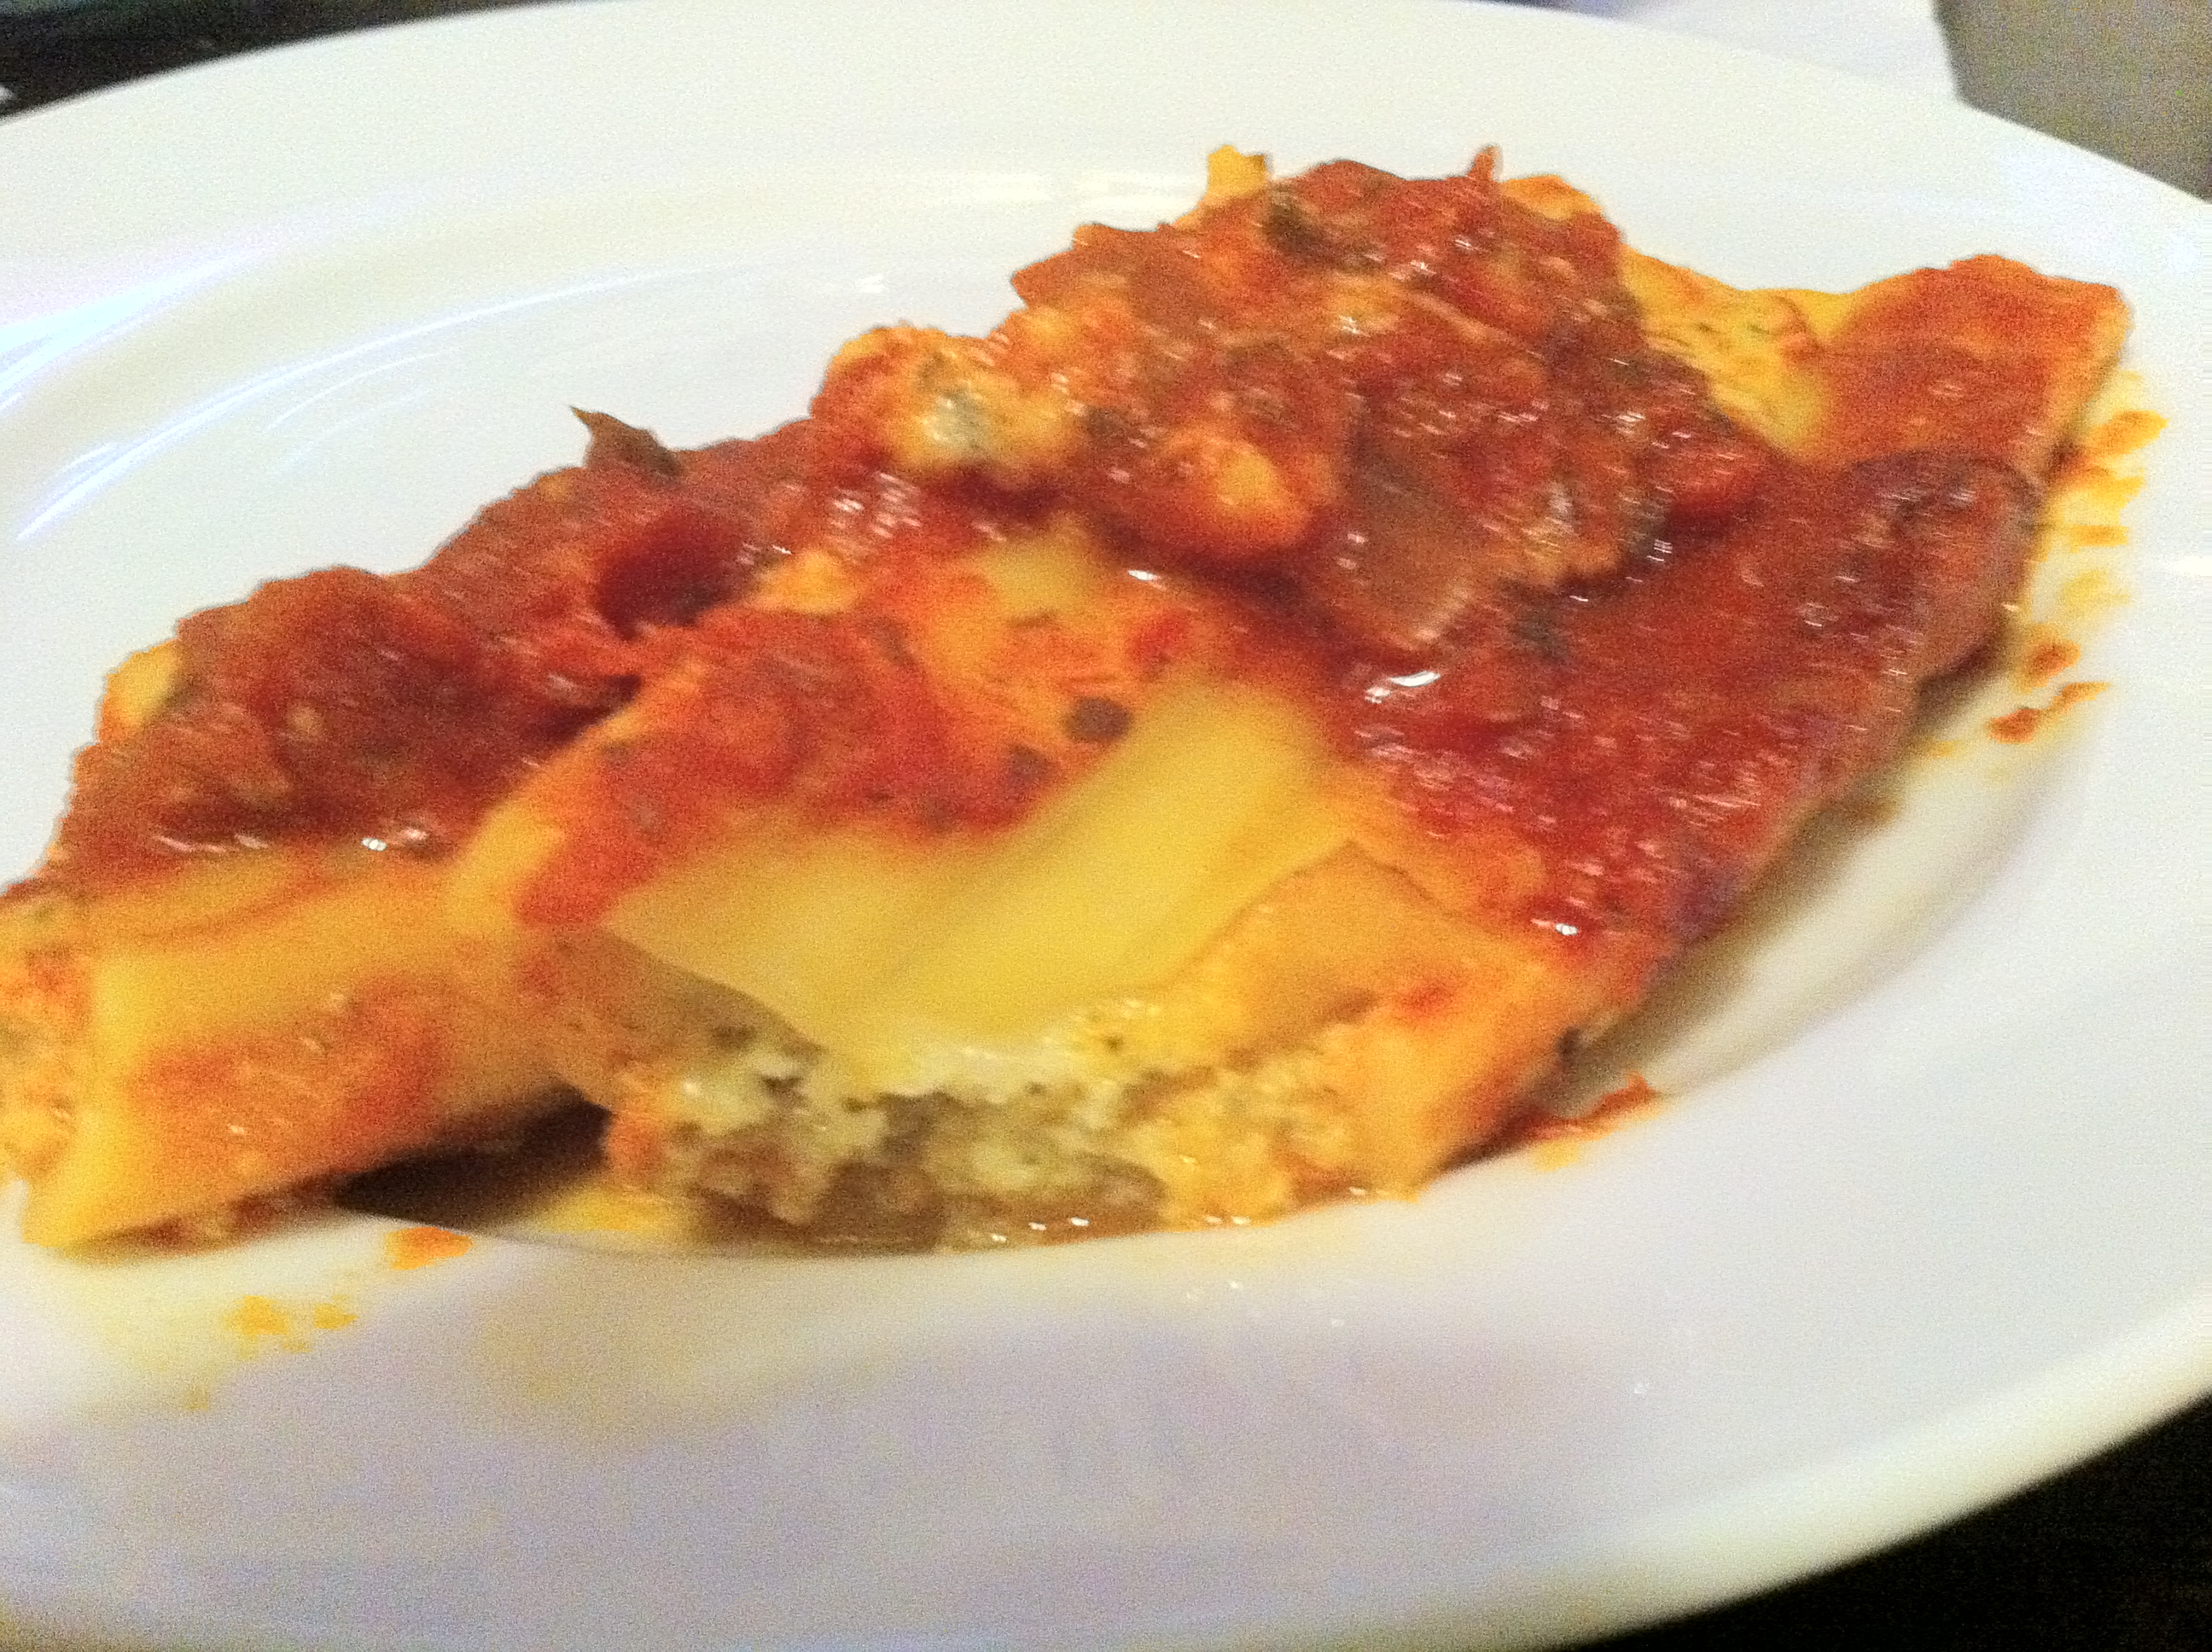 Easy Baked Manicotti by Aurora Meyer on aurorameyer.com